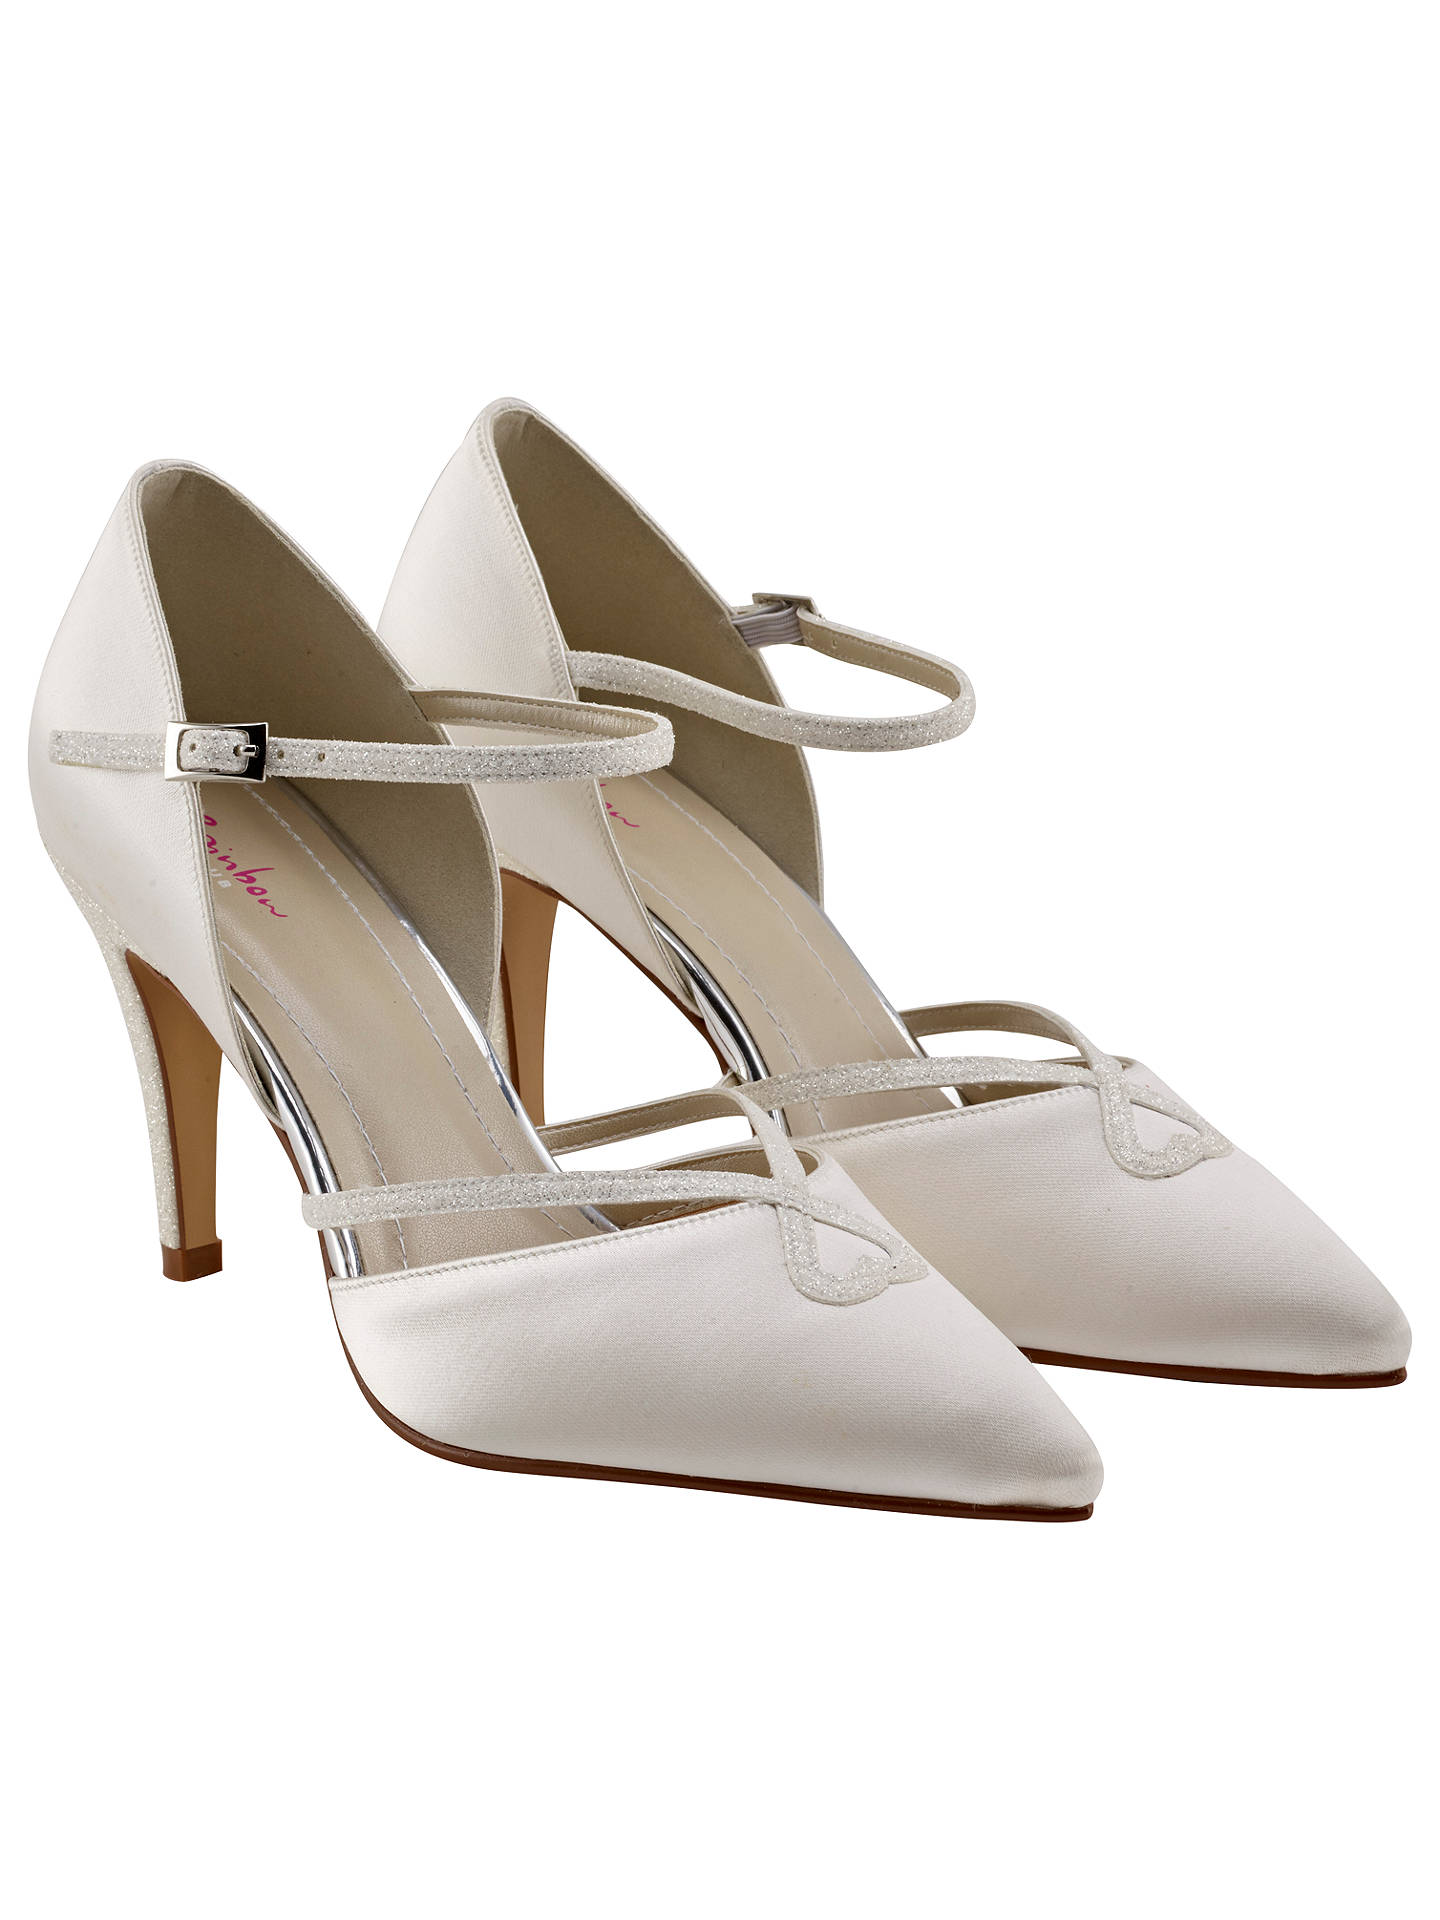 BuyRainbow Club Fleur Pointed Toe Court Shoes, Ivory, 3 Online at johnlewis.com